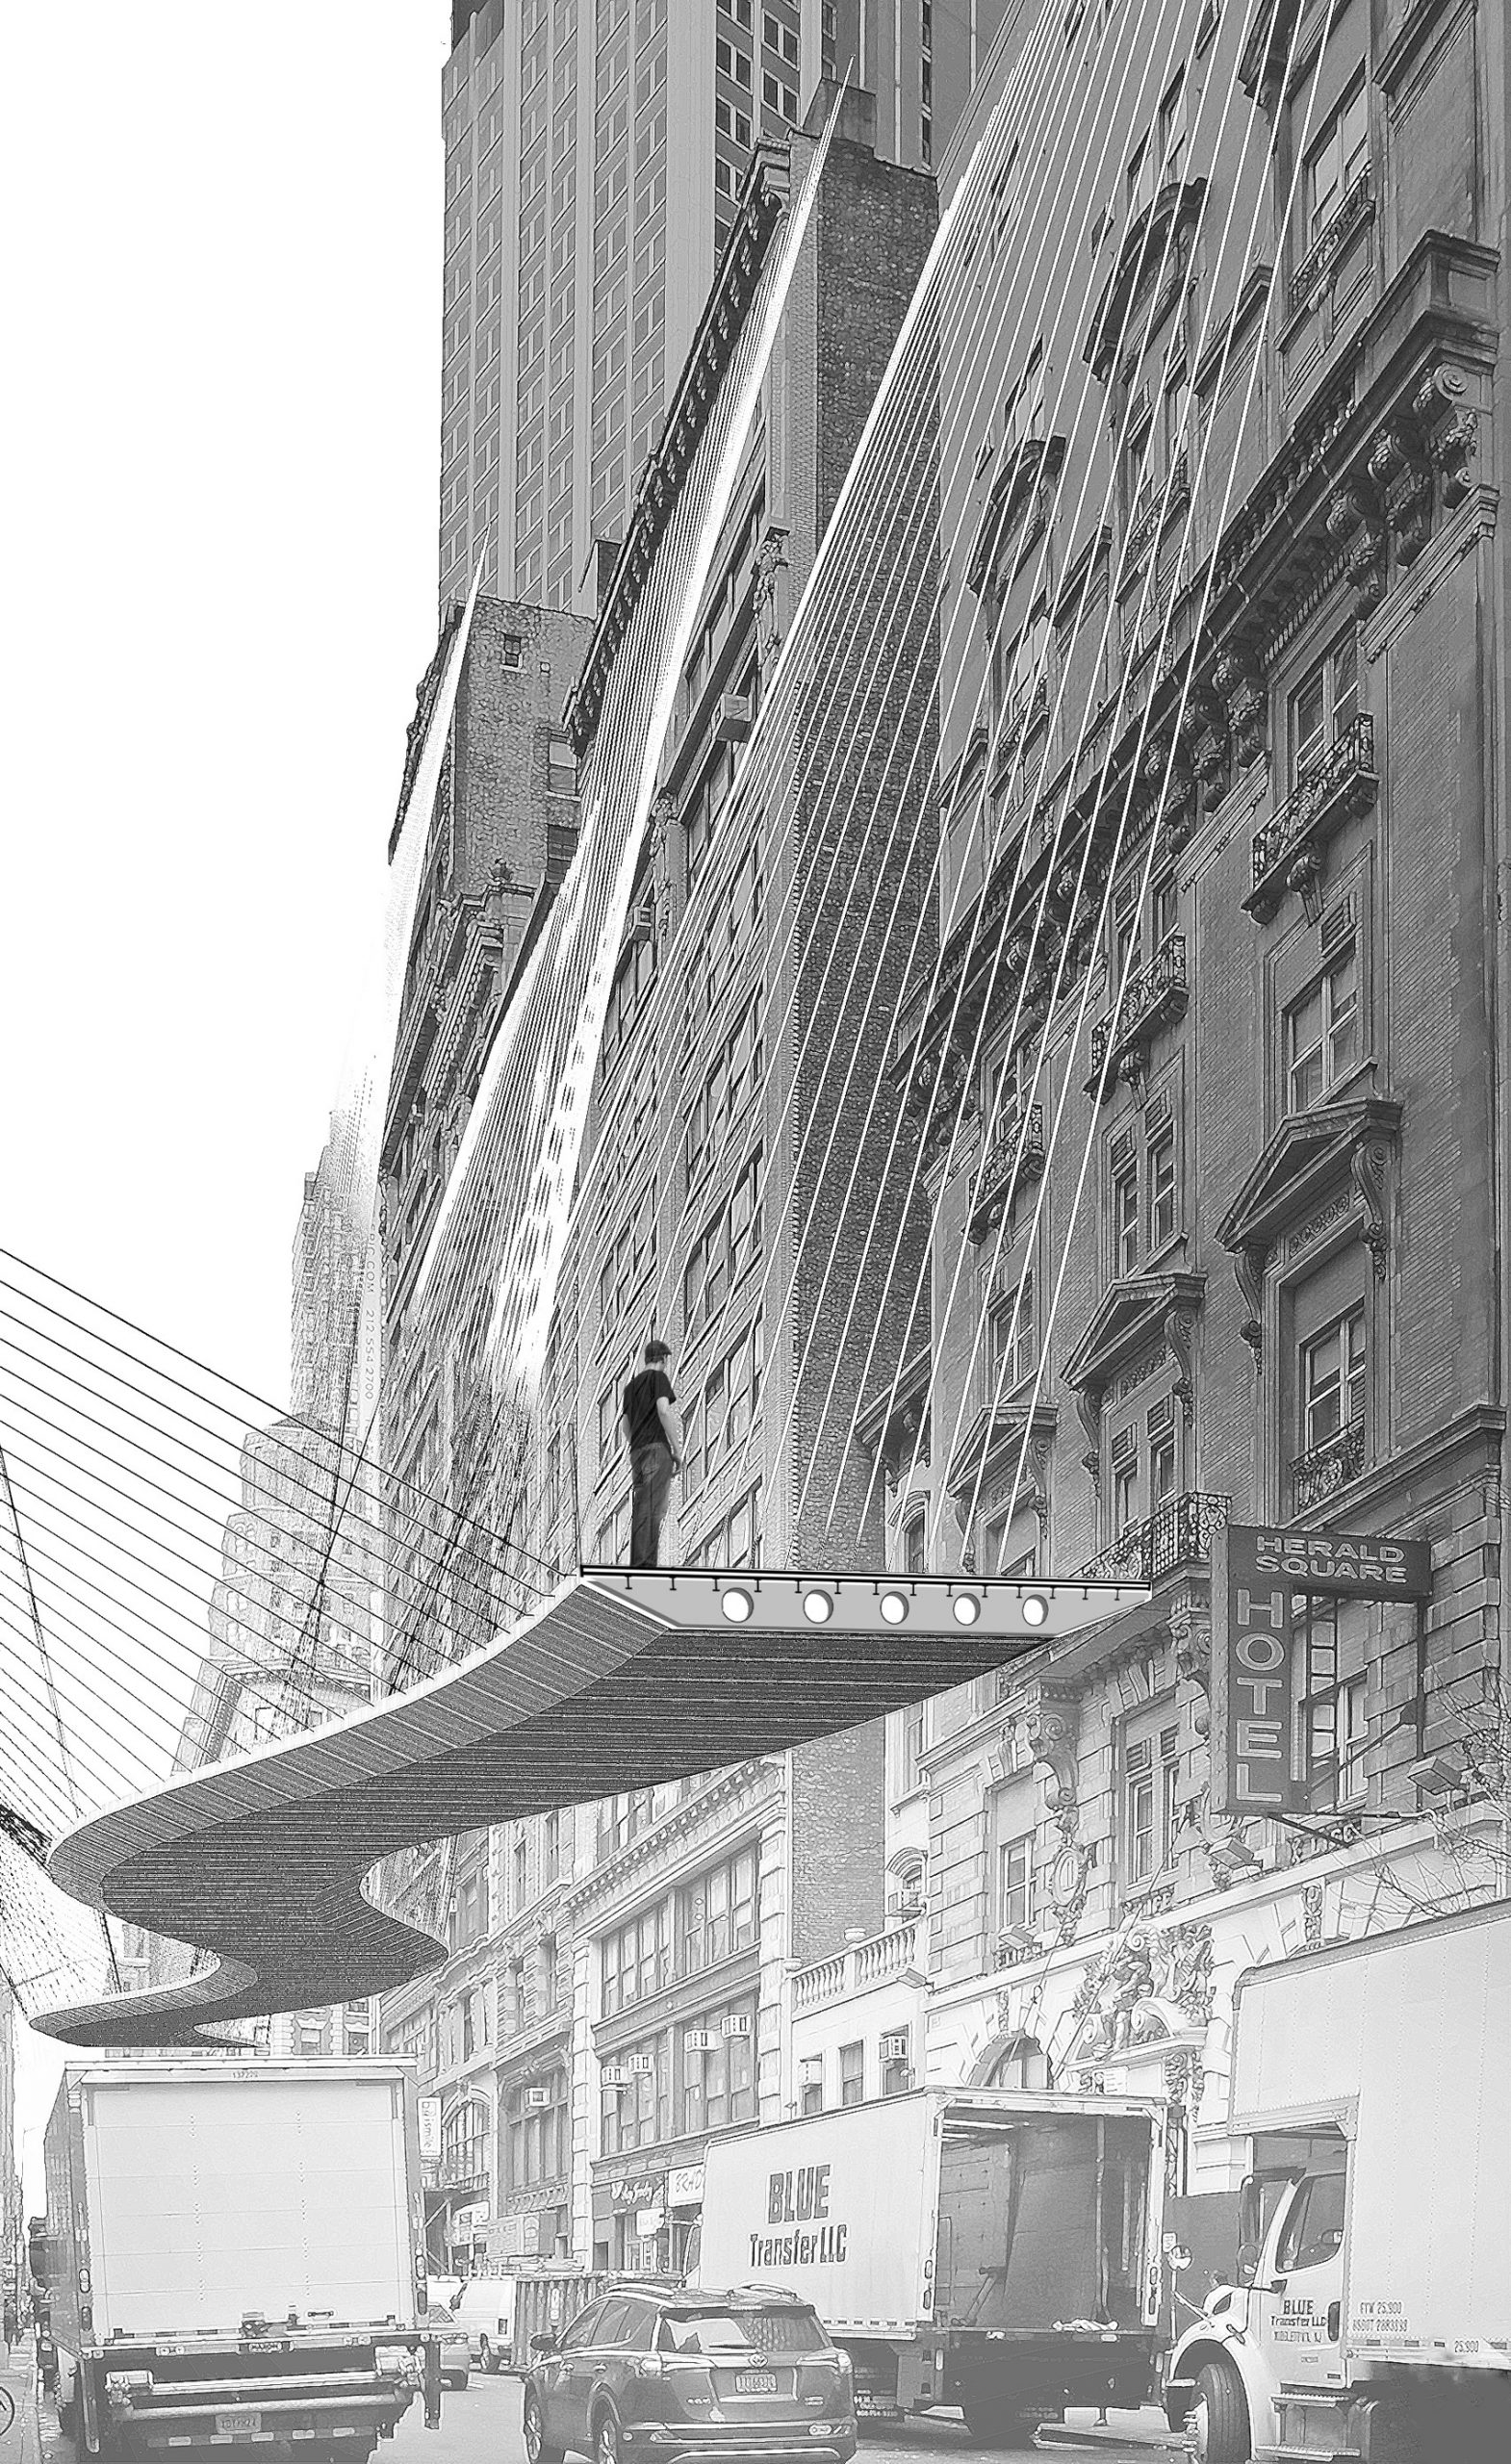 A black and white architectural perspective drawing